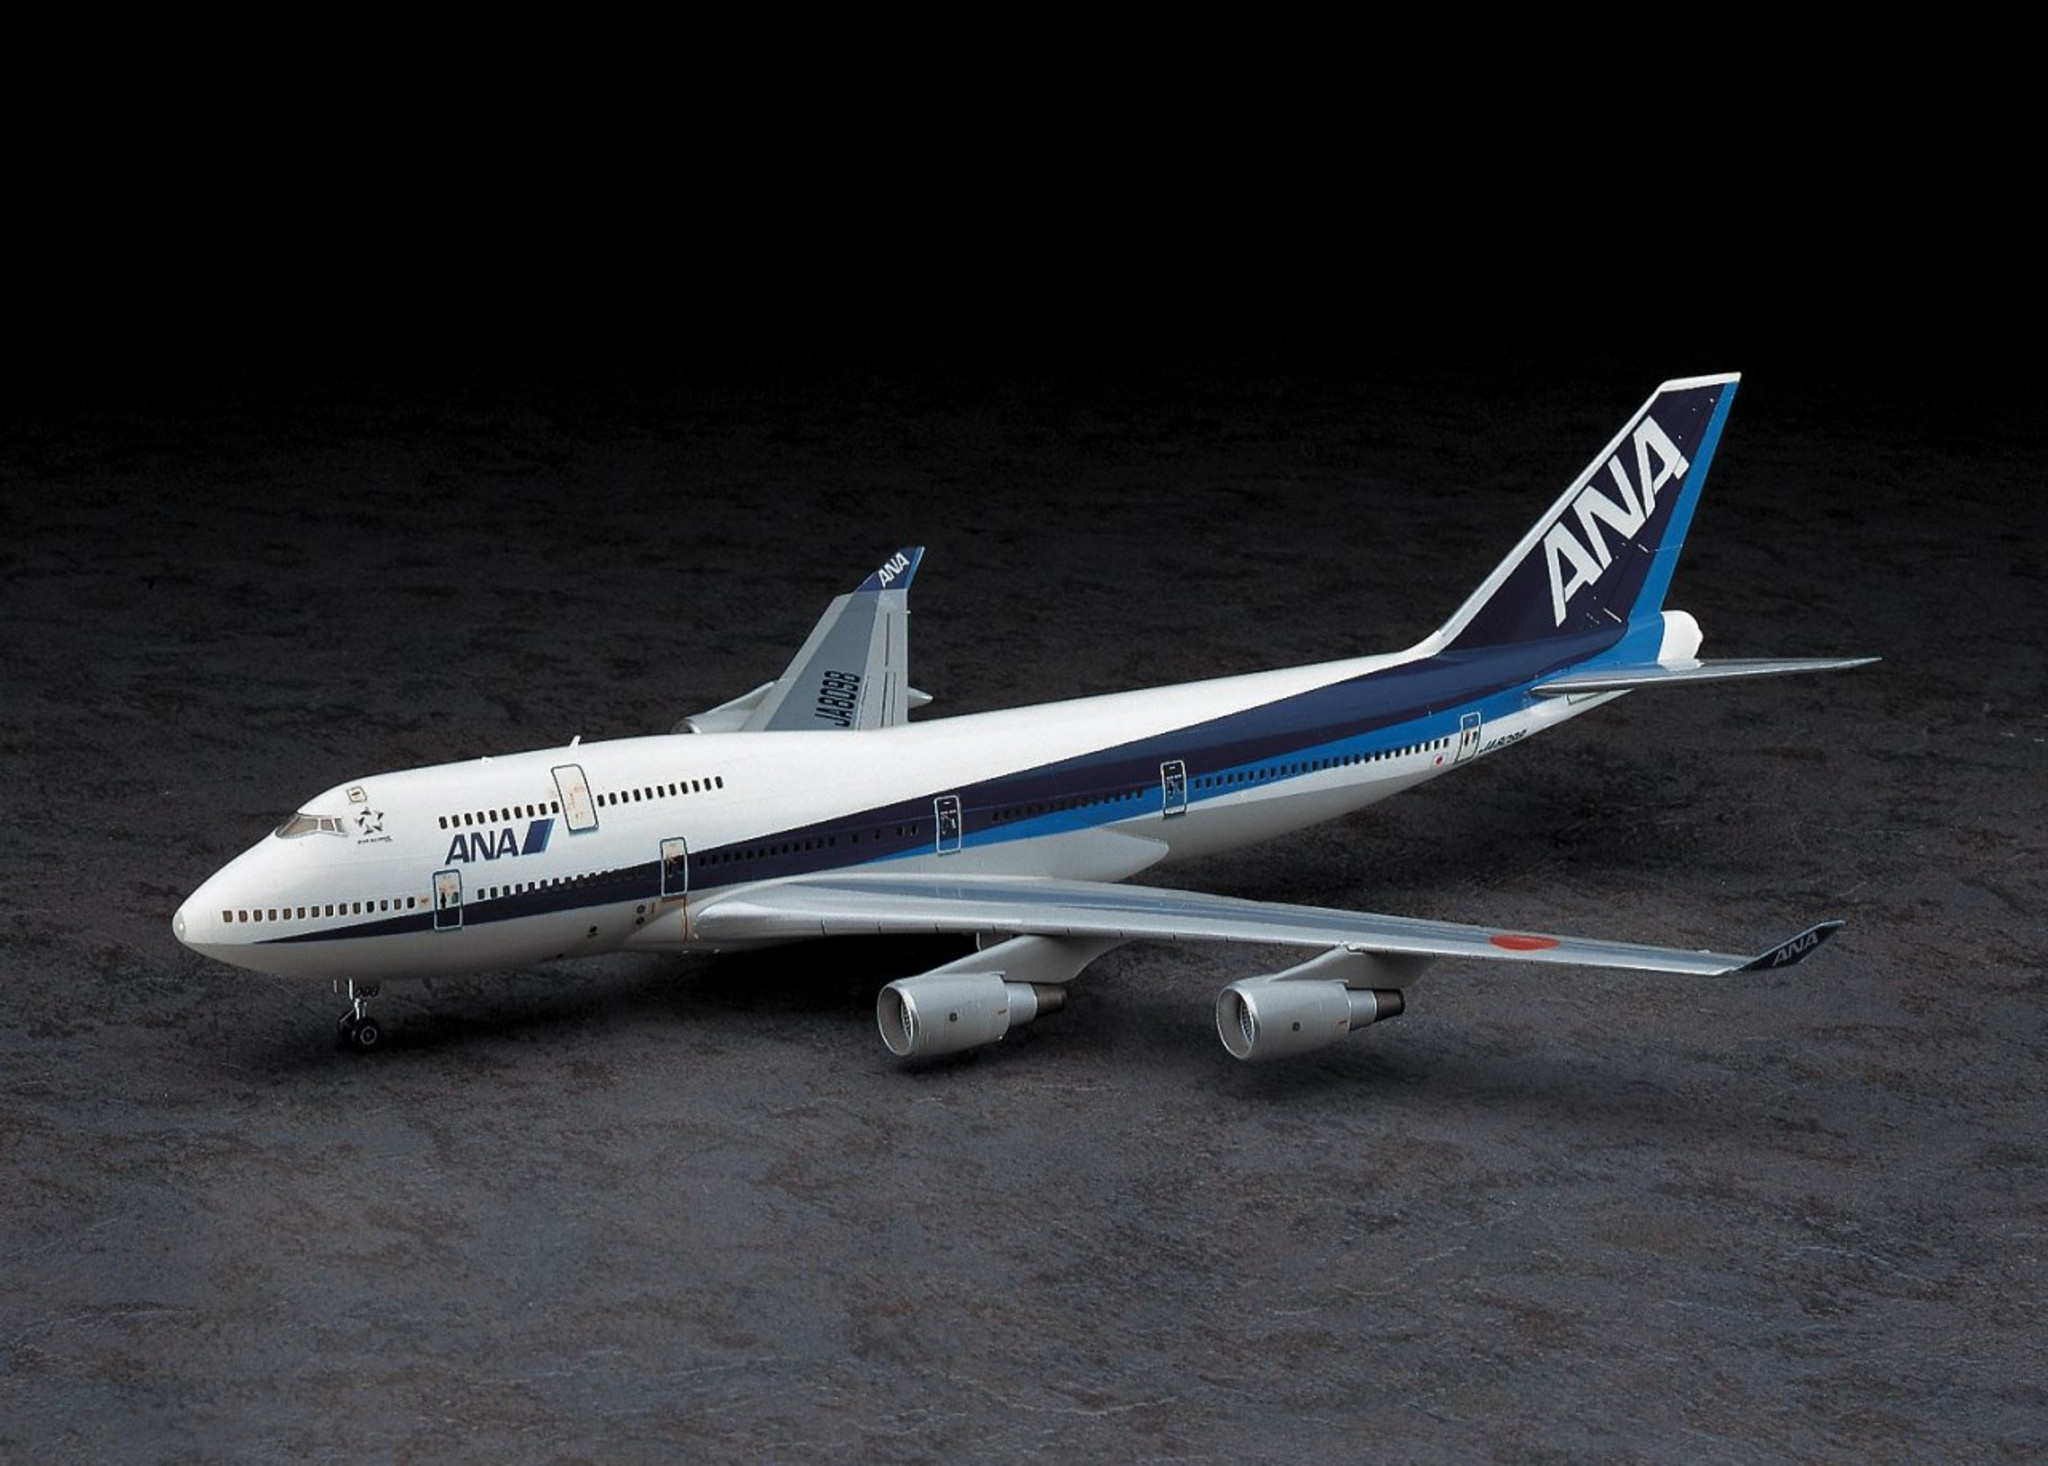 Hasegawa 02 ANA All Nippon Airways Boeing 747-400 1/200 Scale Kit on